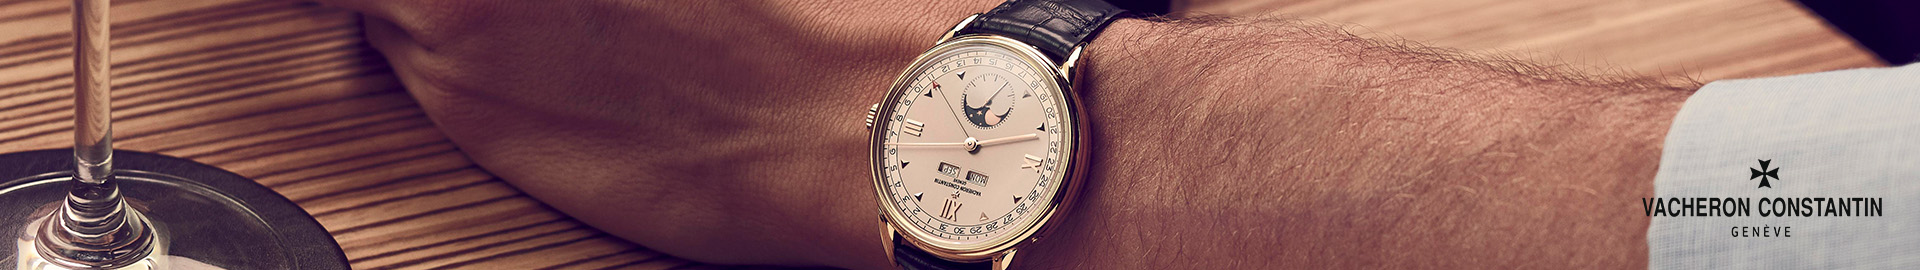 Vacheron Constantin men's watches Zazare Diamonds